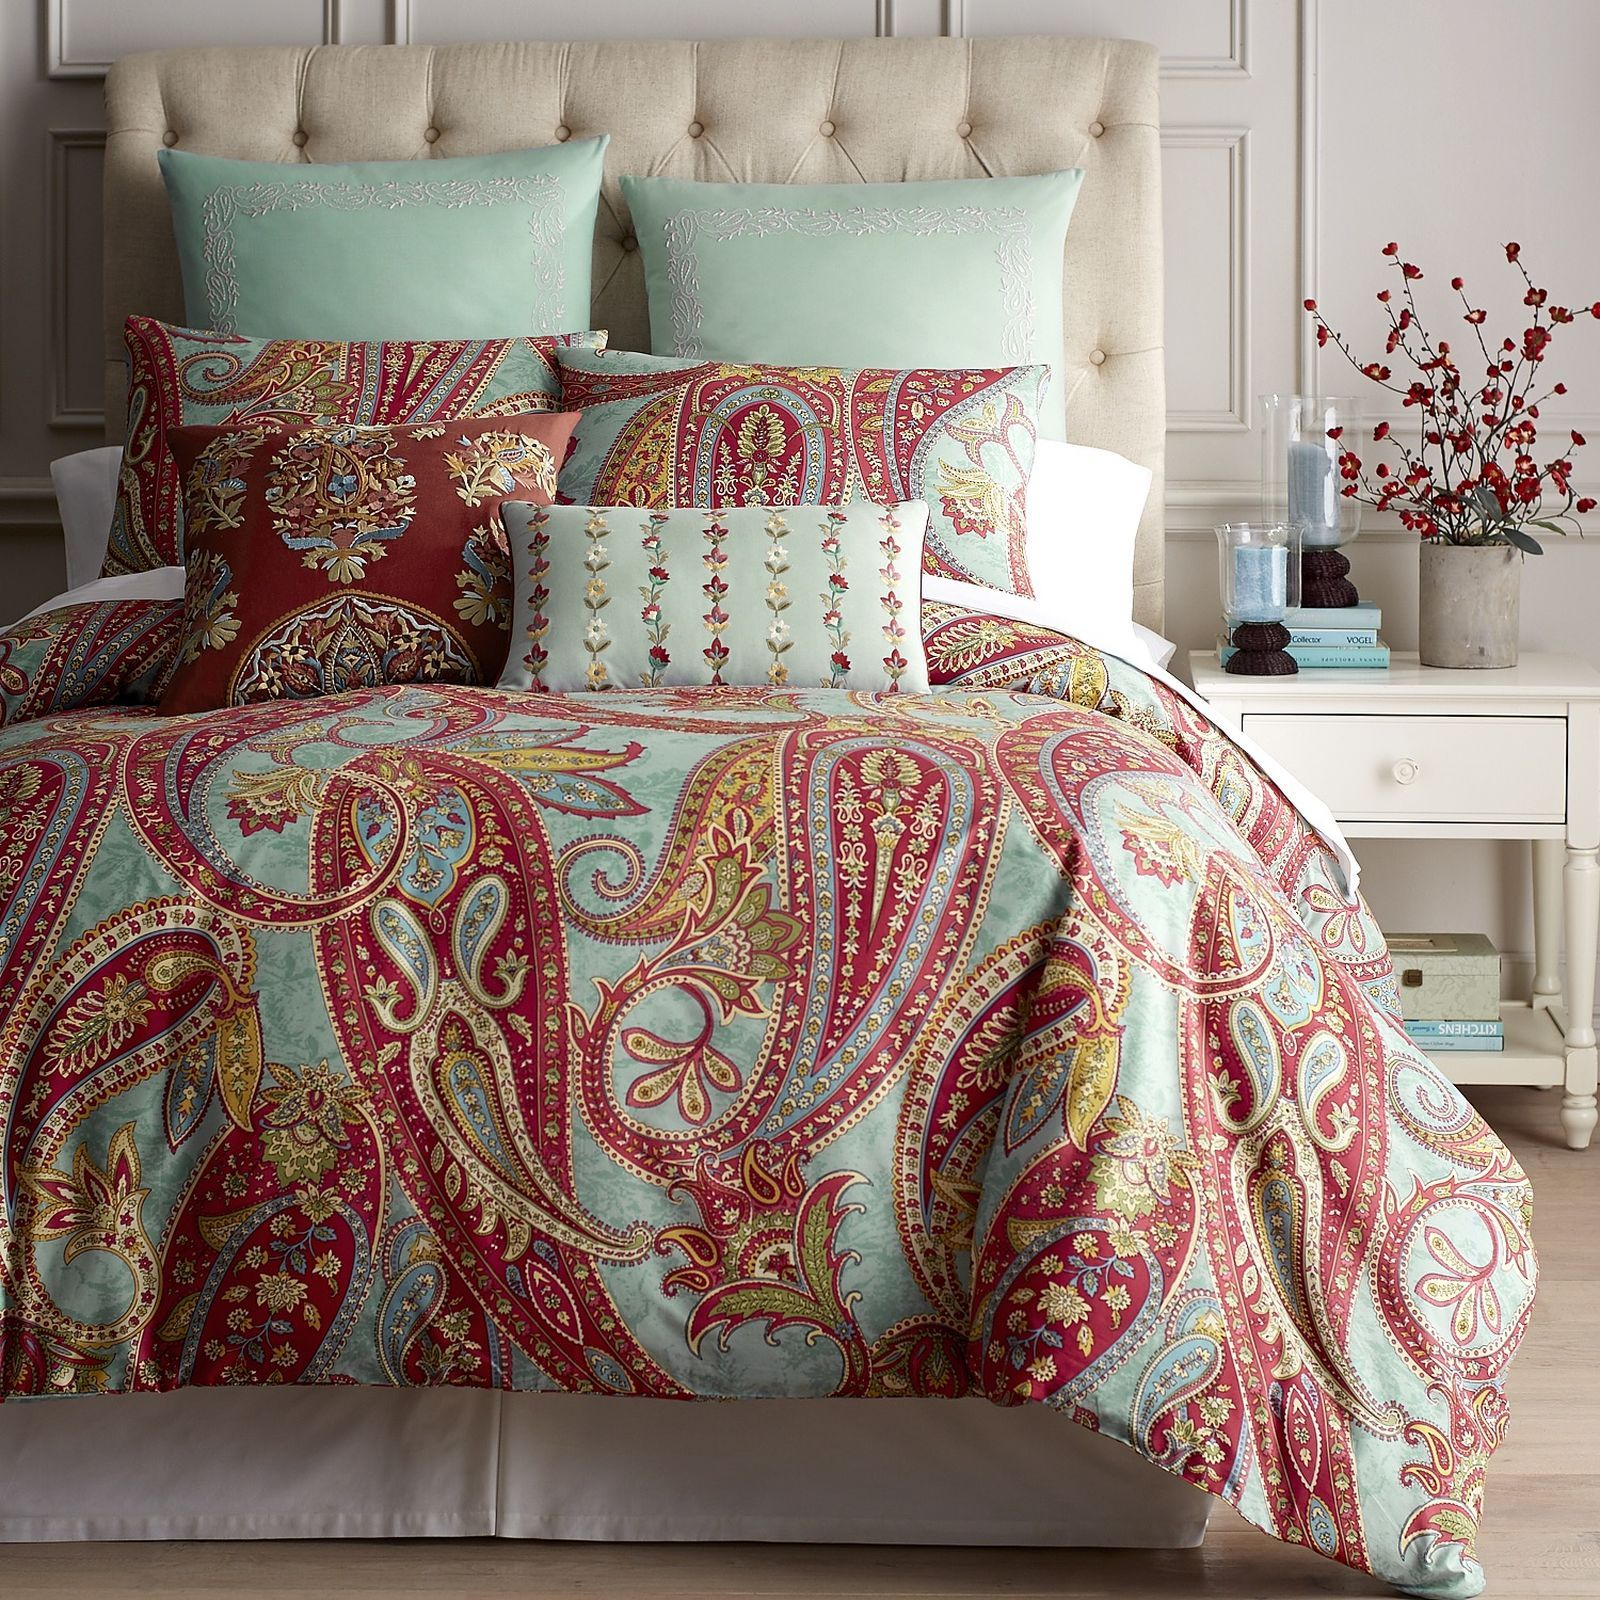 Handcrafted Of 100 Cotton Our Granada Paisley Bedding Will Add